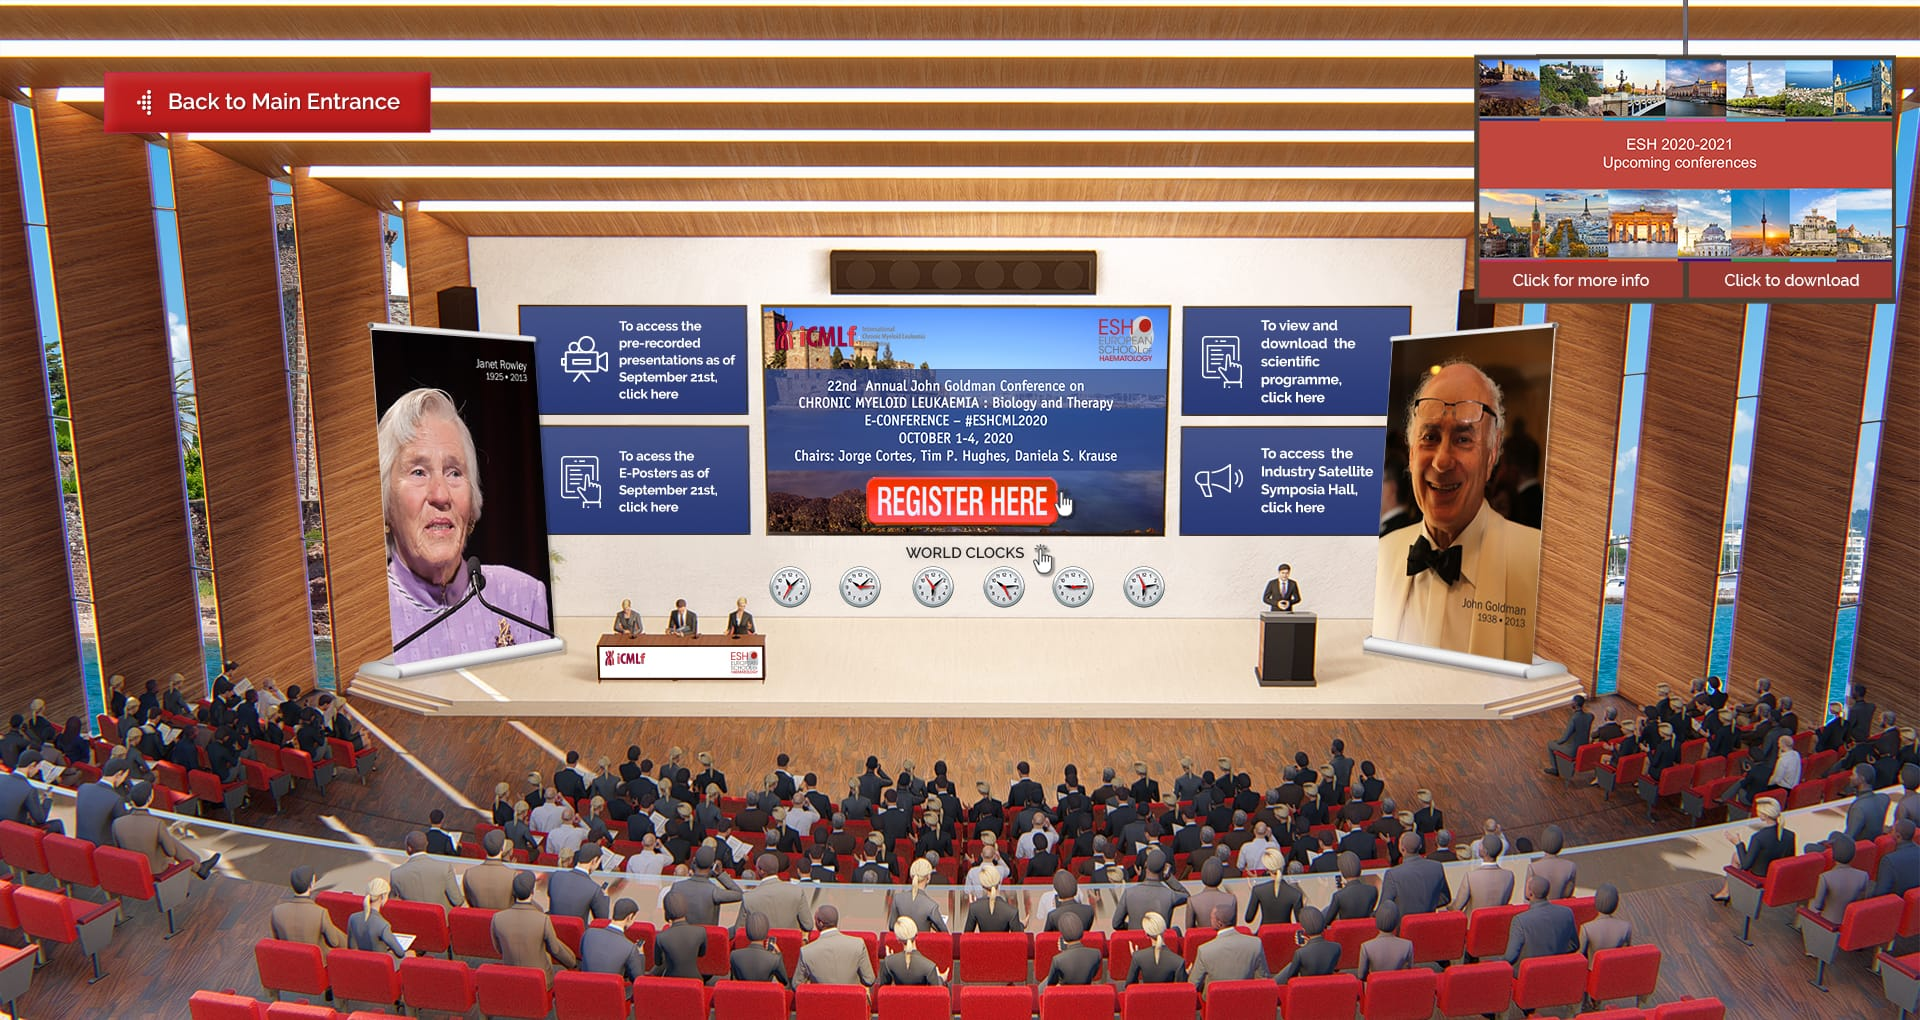 Annual John Goldman E-conference on Chronic Myeloid Leukemia: Biology And Therapy